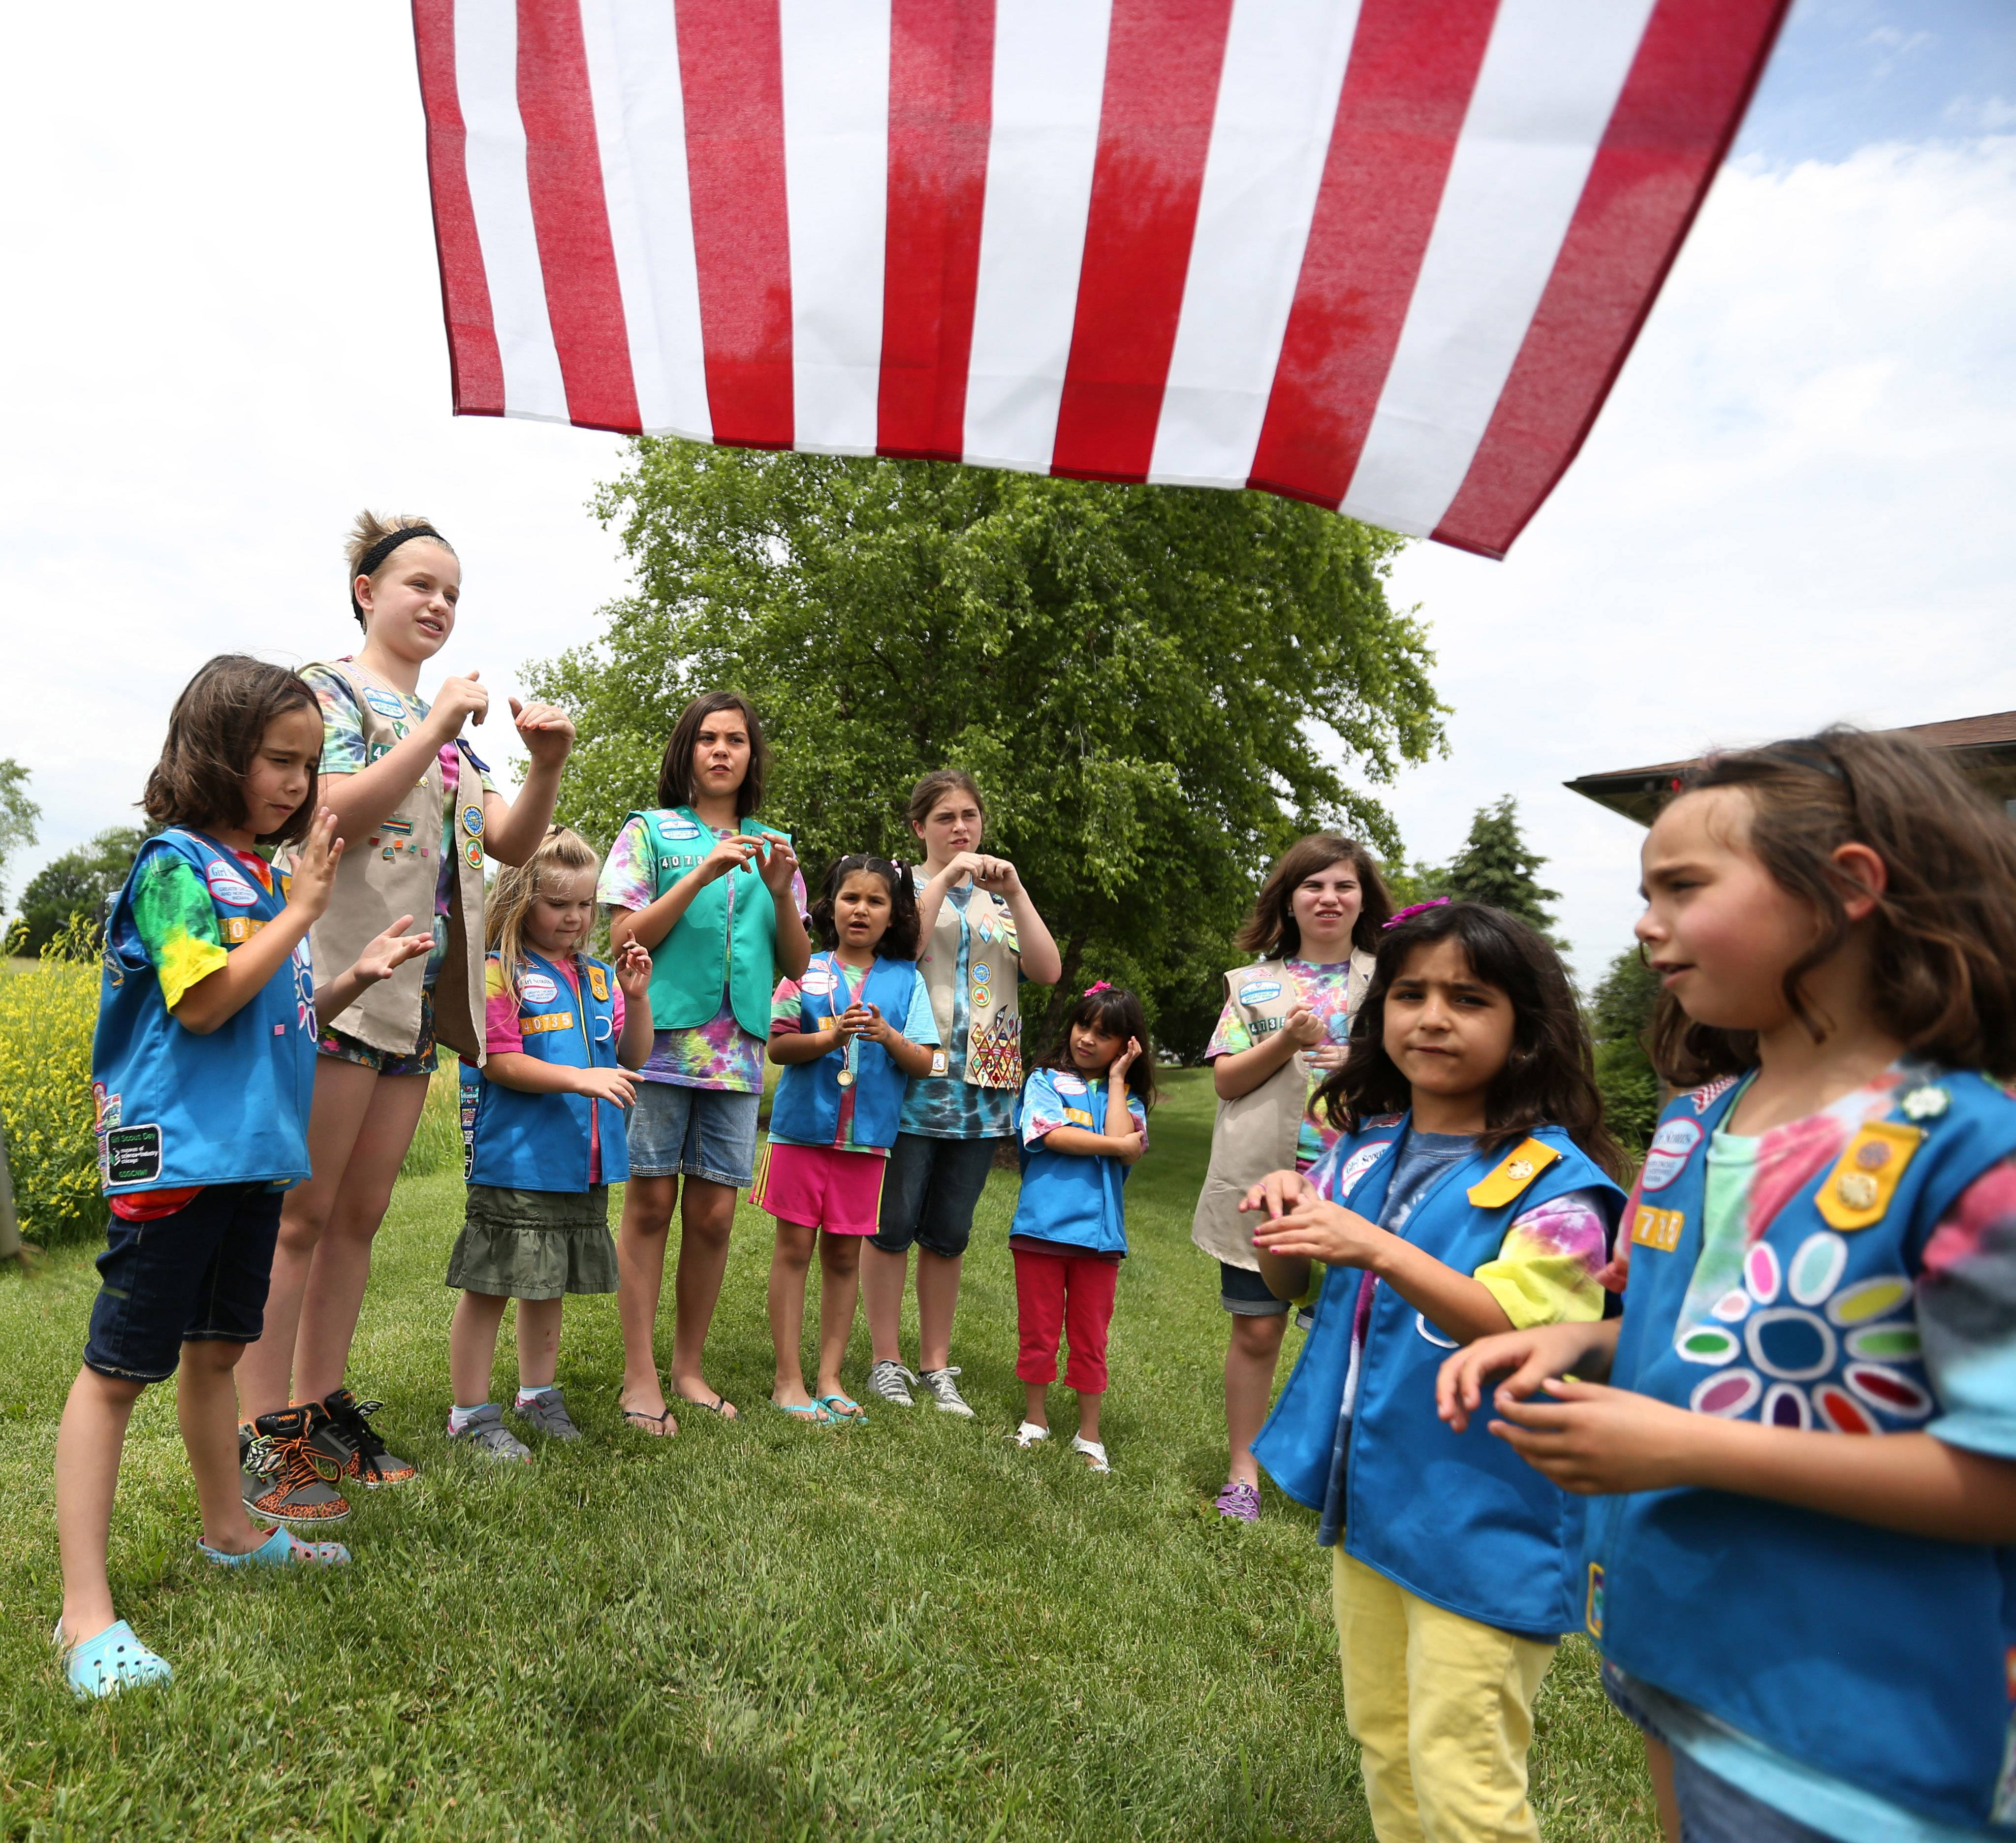 Members of Girl Scout Troop 40735, designed for the deaf and hard of hearing, sign the Pledge of Allegiance near a U.S. flag at recent meeting in the Mundelein area. Girls travel from as far as Blue Island to attend Troop 40735's meetings.